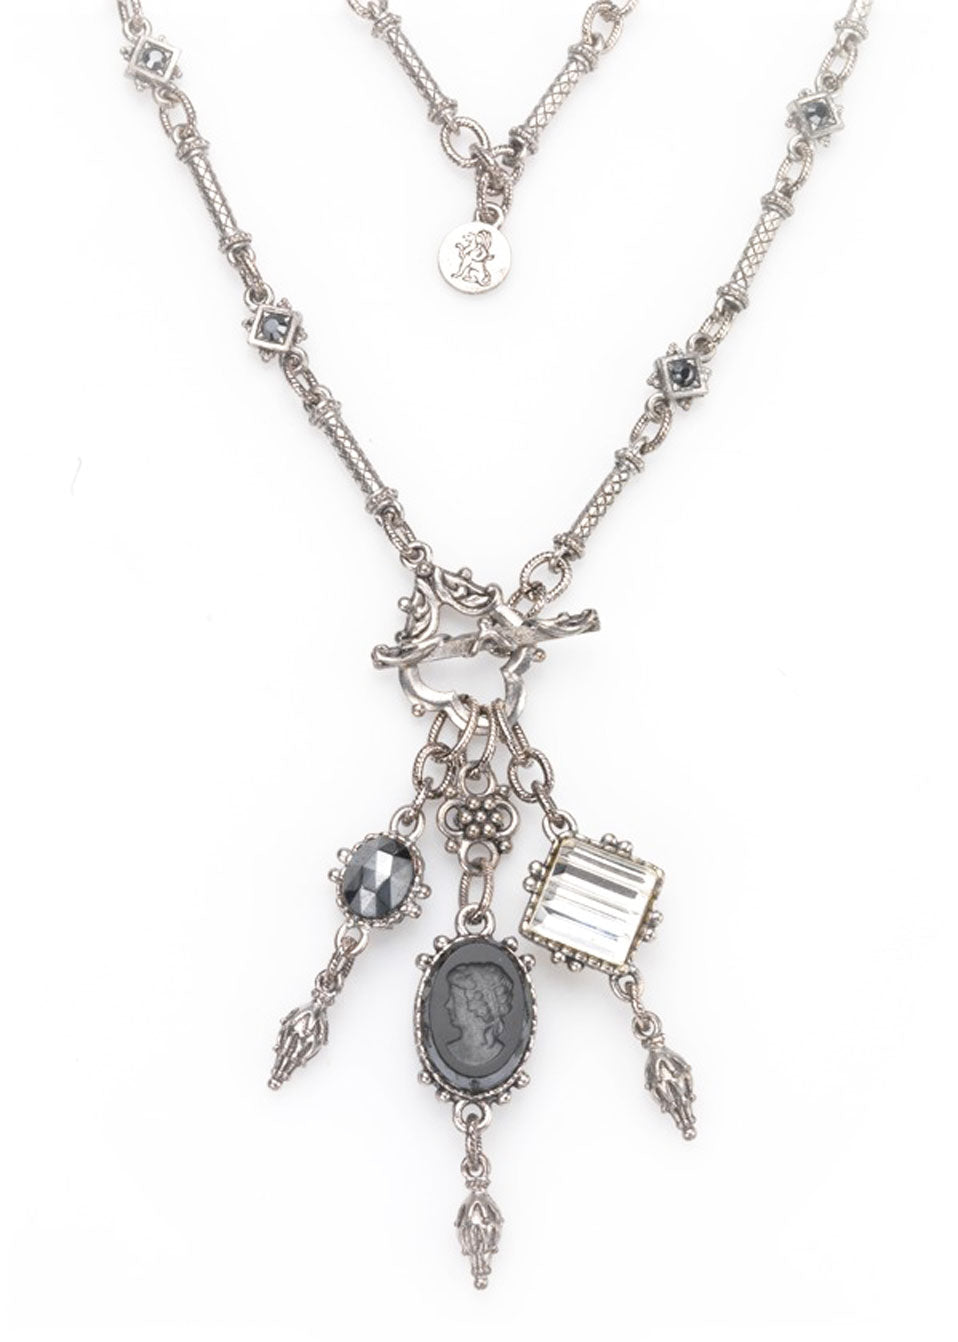 Hematite-Crystal Charm Necklace